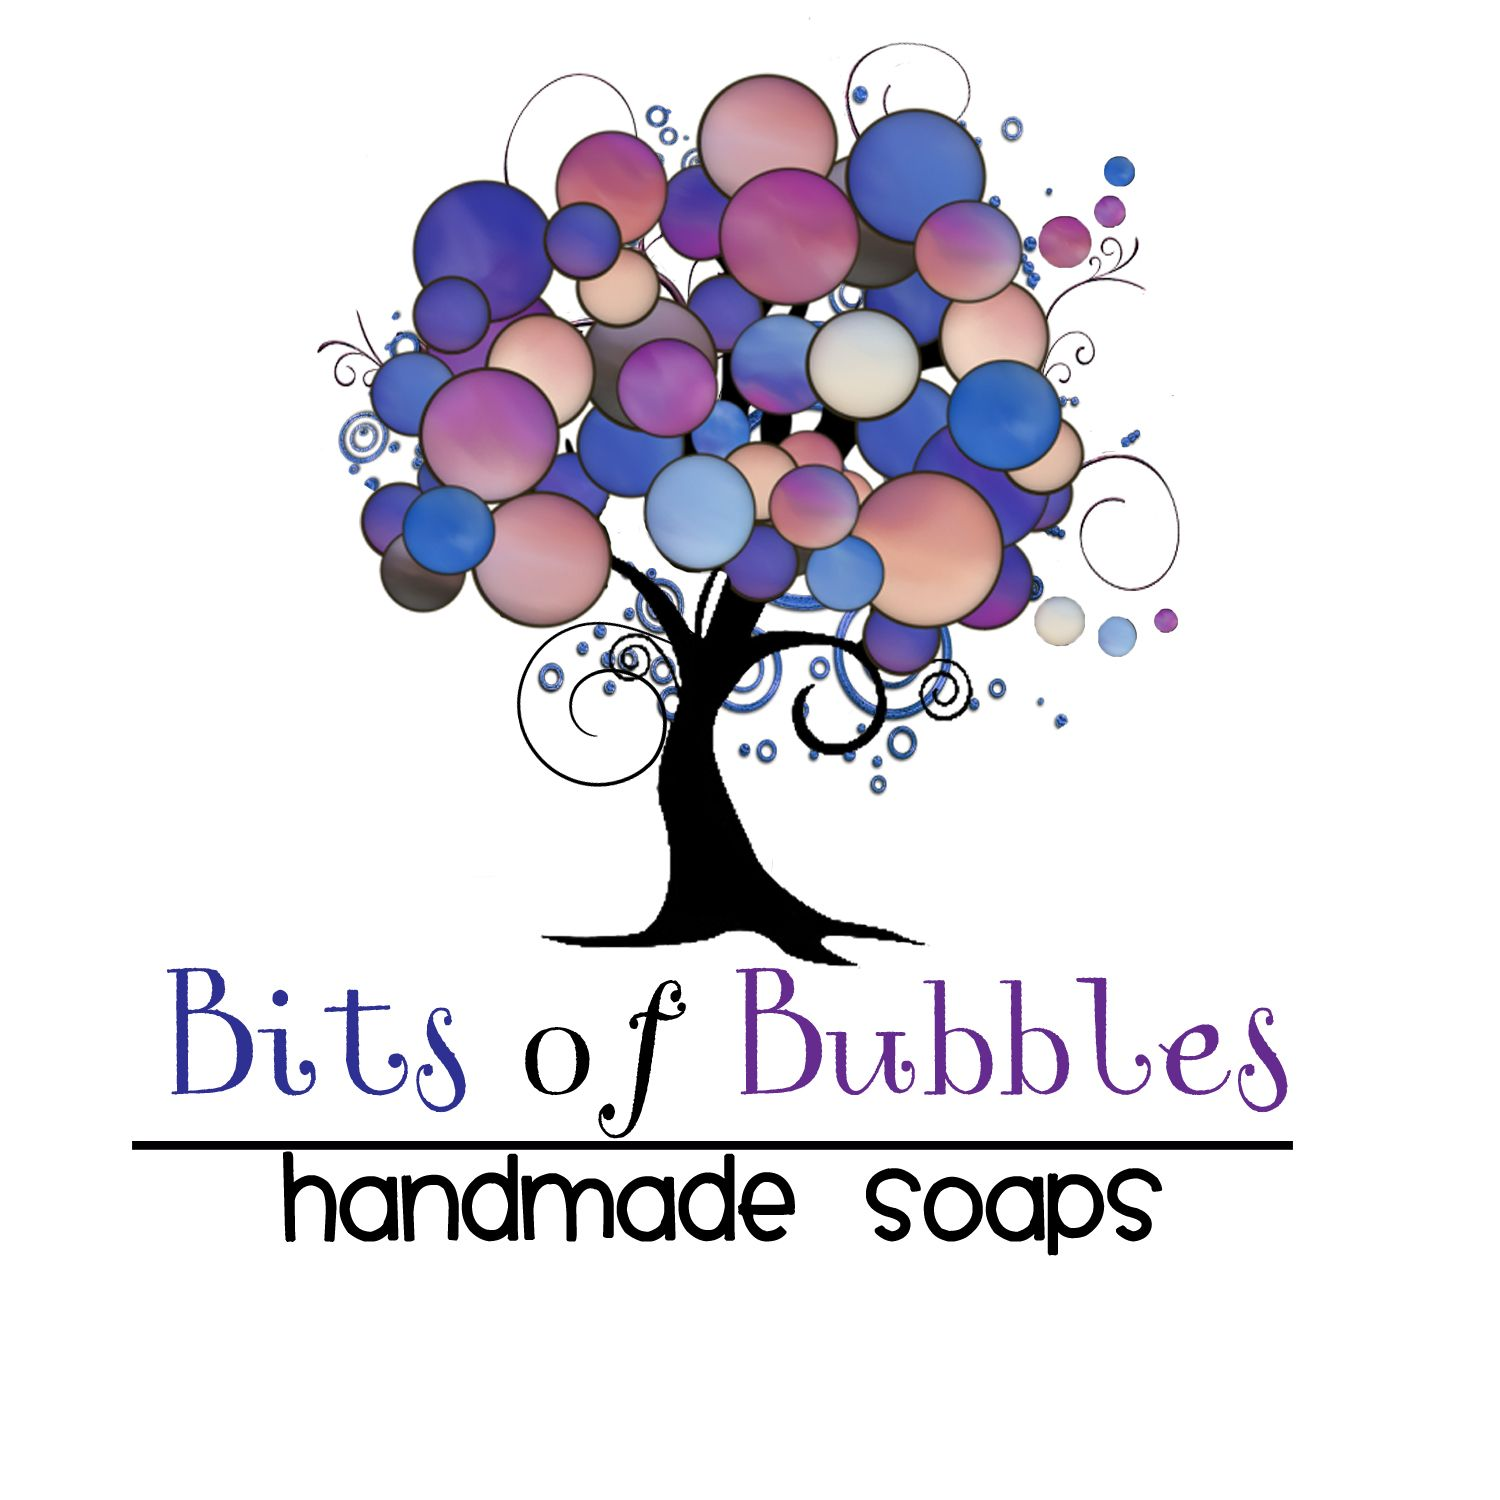 My New Business Logo Bubble Bath Bomb Handmade Soaps Business Logo